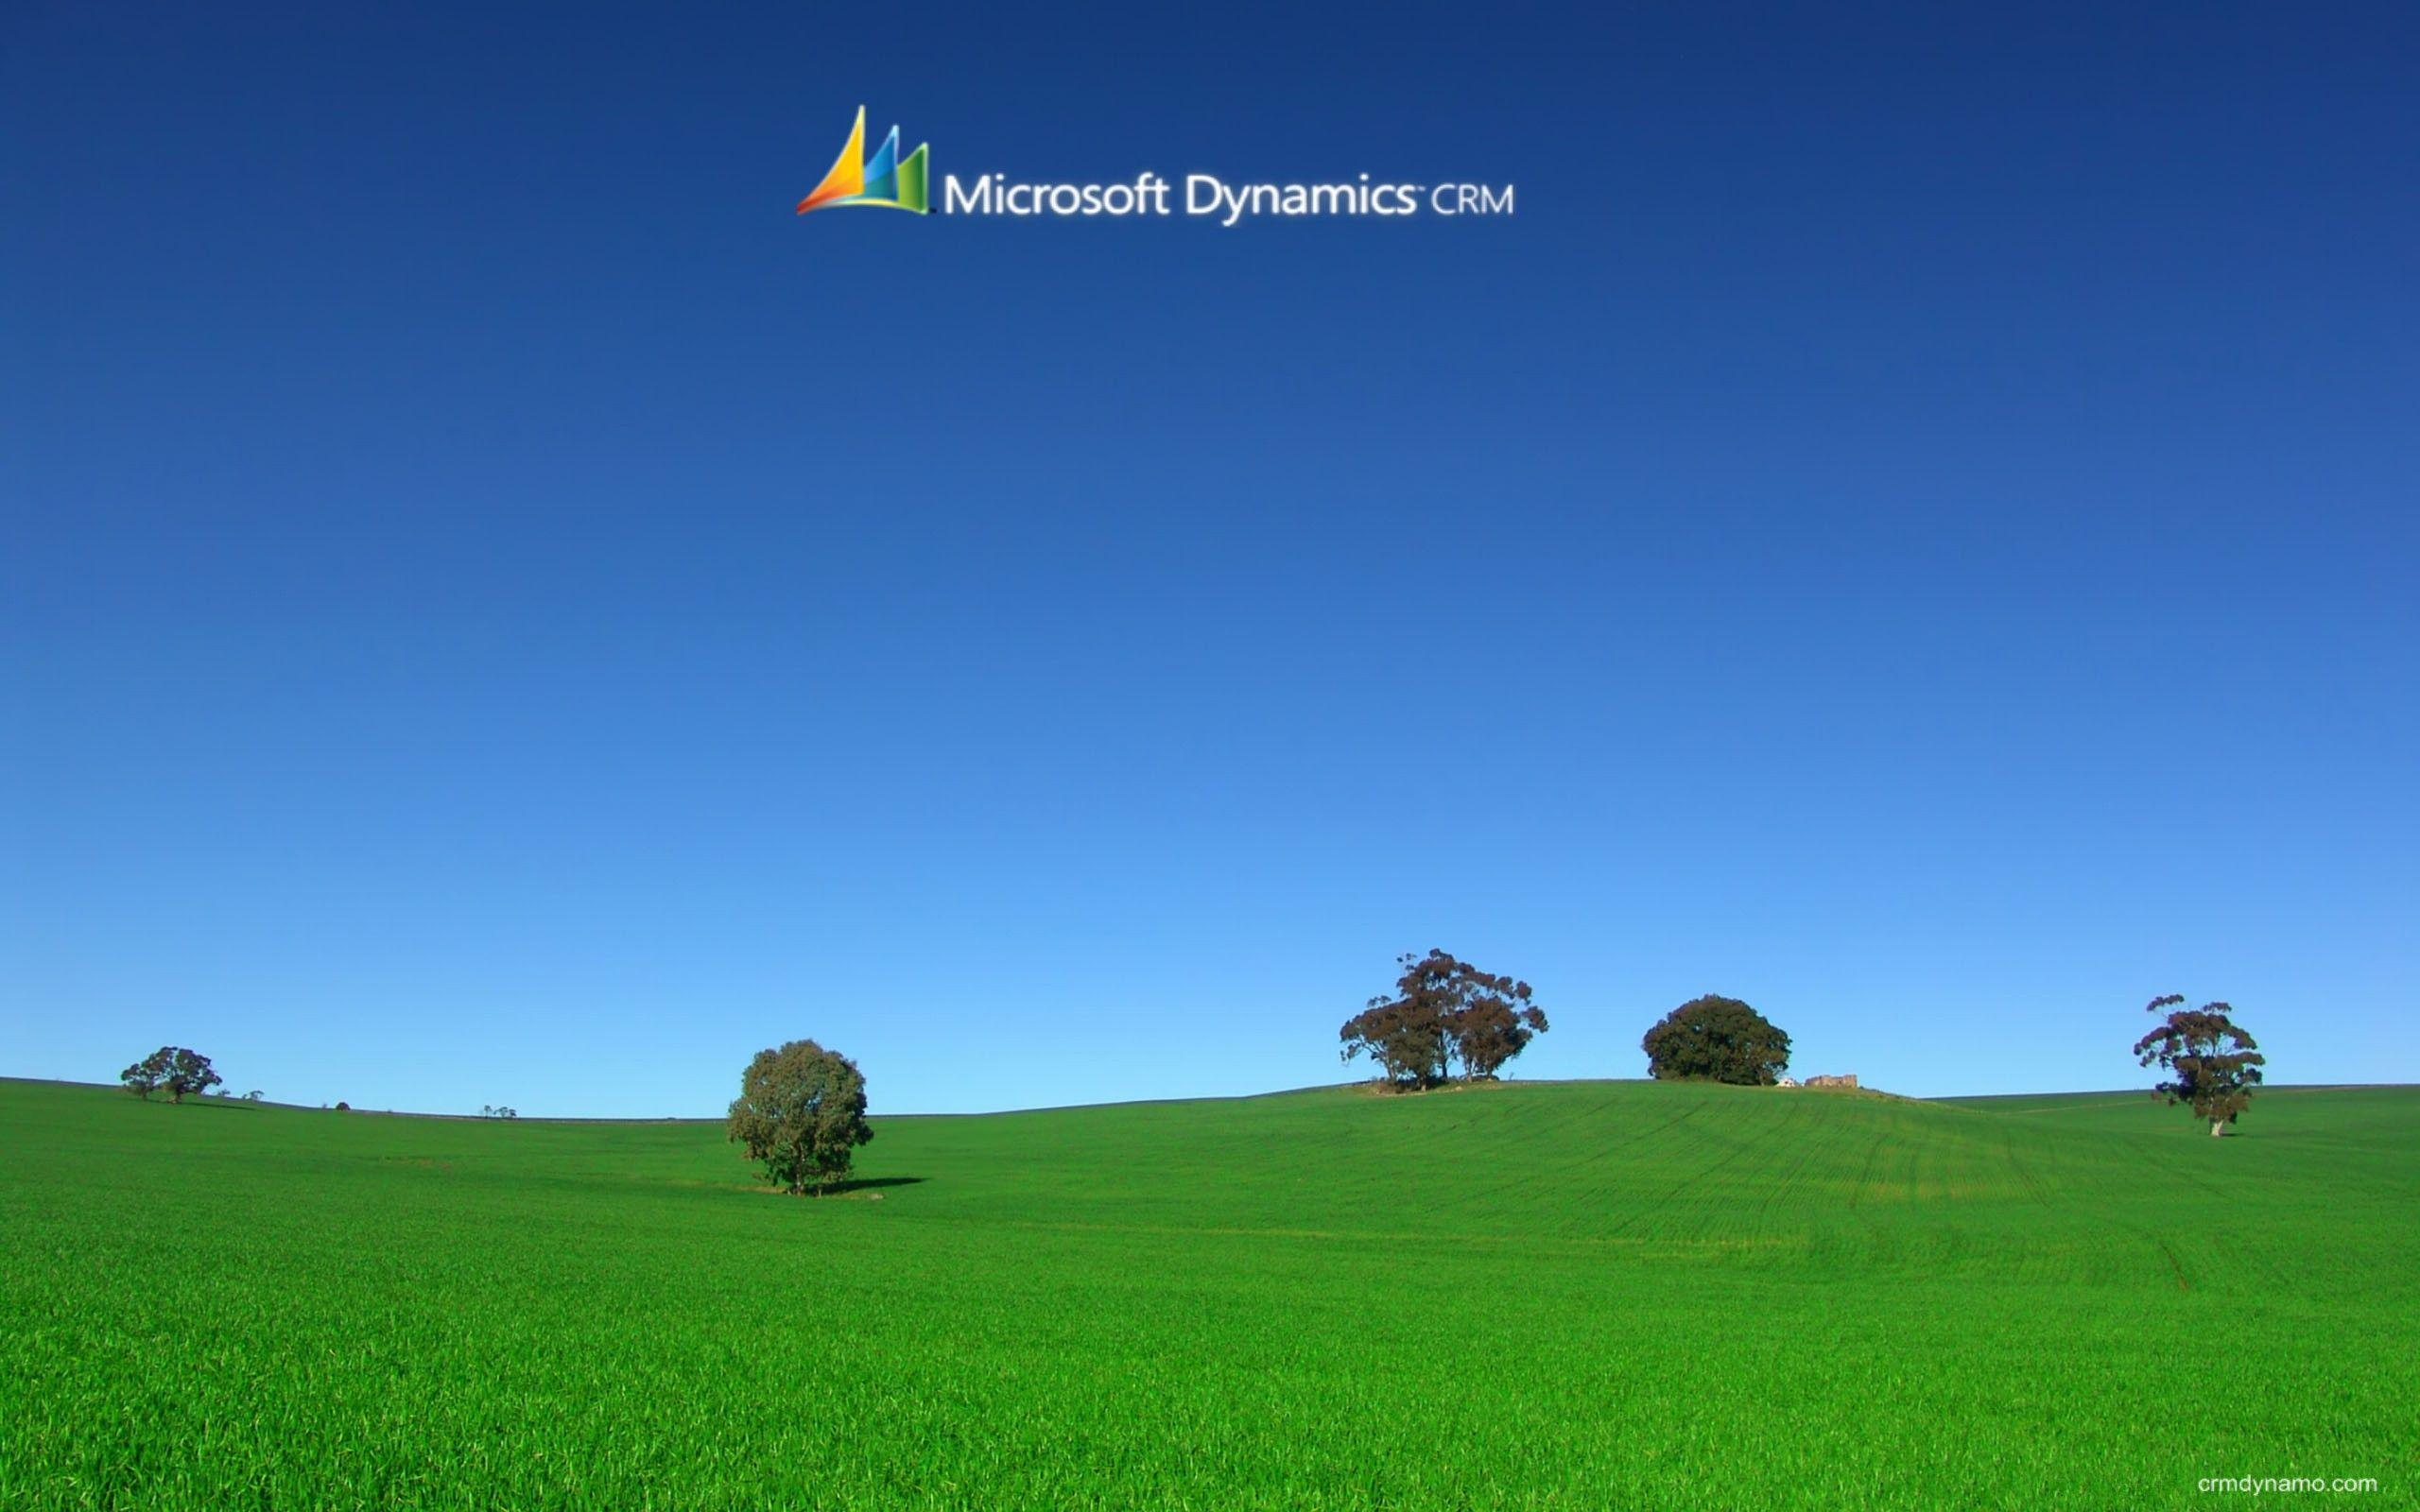 Download these new Dynamics CRM wallpapers to spice up your